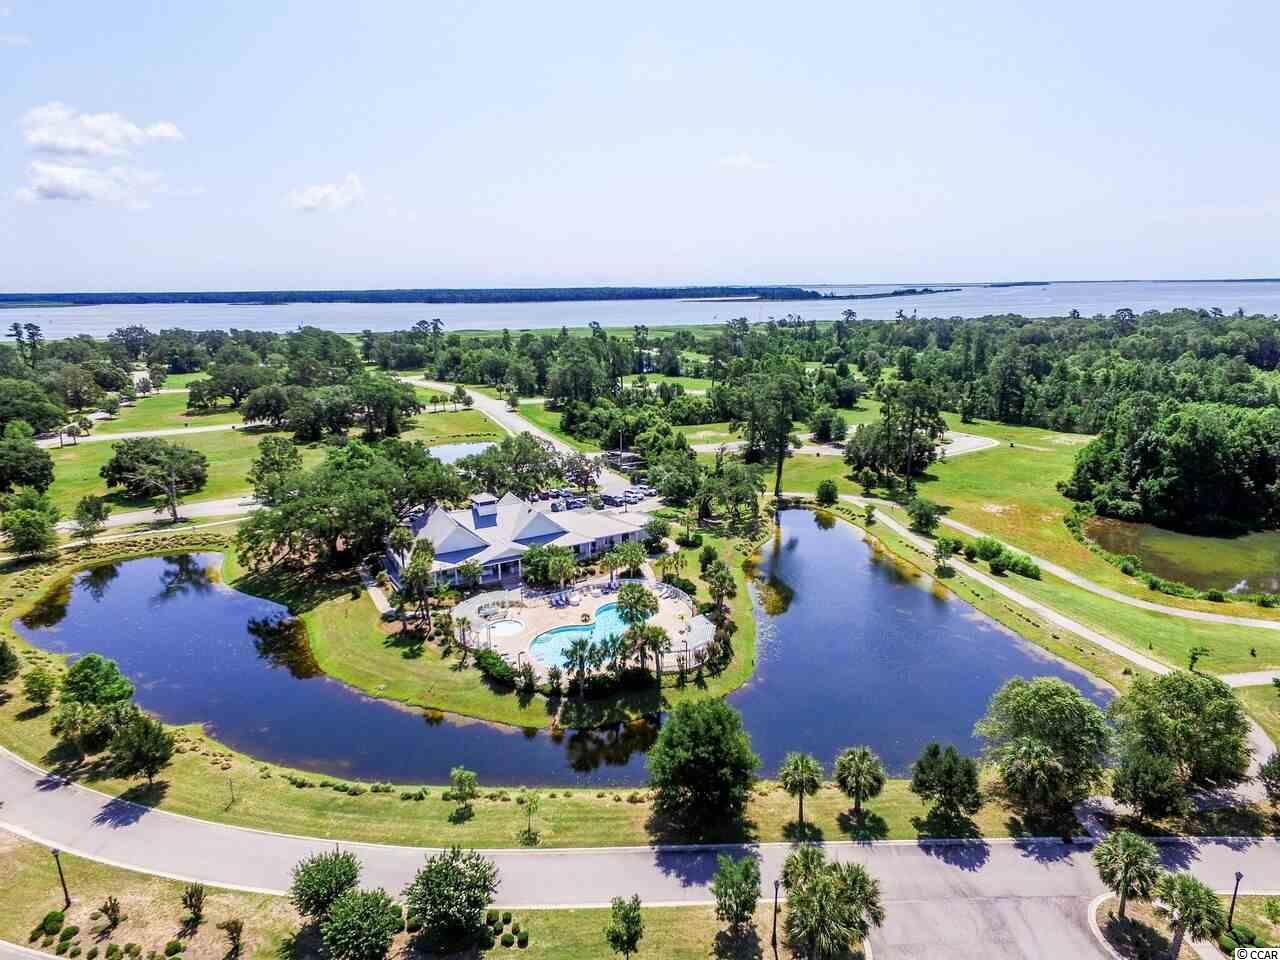 South Island Plantation...A gated community located along Winyah Bay and the Intracoastal Waterway, near Historic Georgetown,SC. Community amenities include a pool, kiddie pool and hot tub. There is also a 5000 sq ft club house with an equipped fitness center, a bar and a full kitchen. Walking trails wind throughout the community with gazebos for periodic resting. A fishing/crabbin' gazebo is now complete.  A secured RV/ Boat storage area is available for property owners. Huge oaks and beautiful ponds make this one of the premier communities in the area. Build your dream home today....